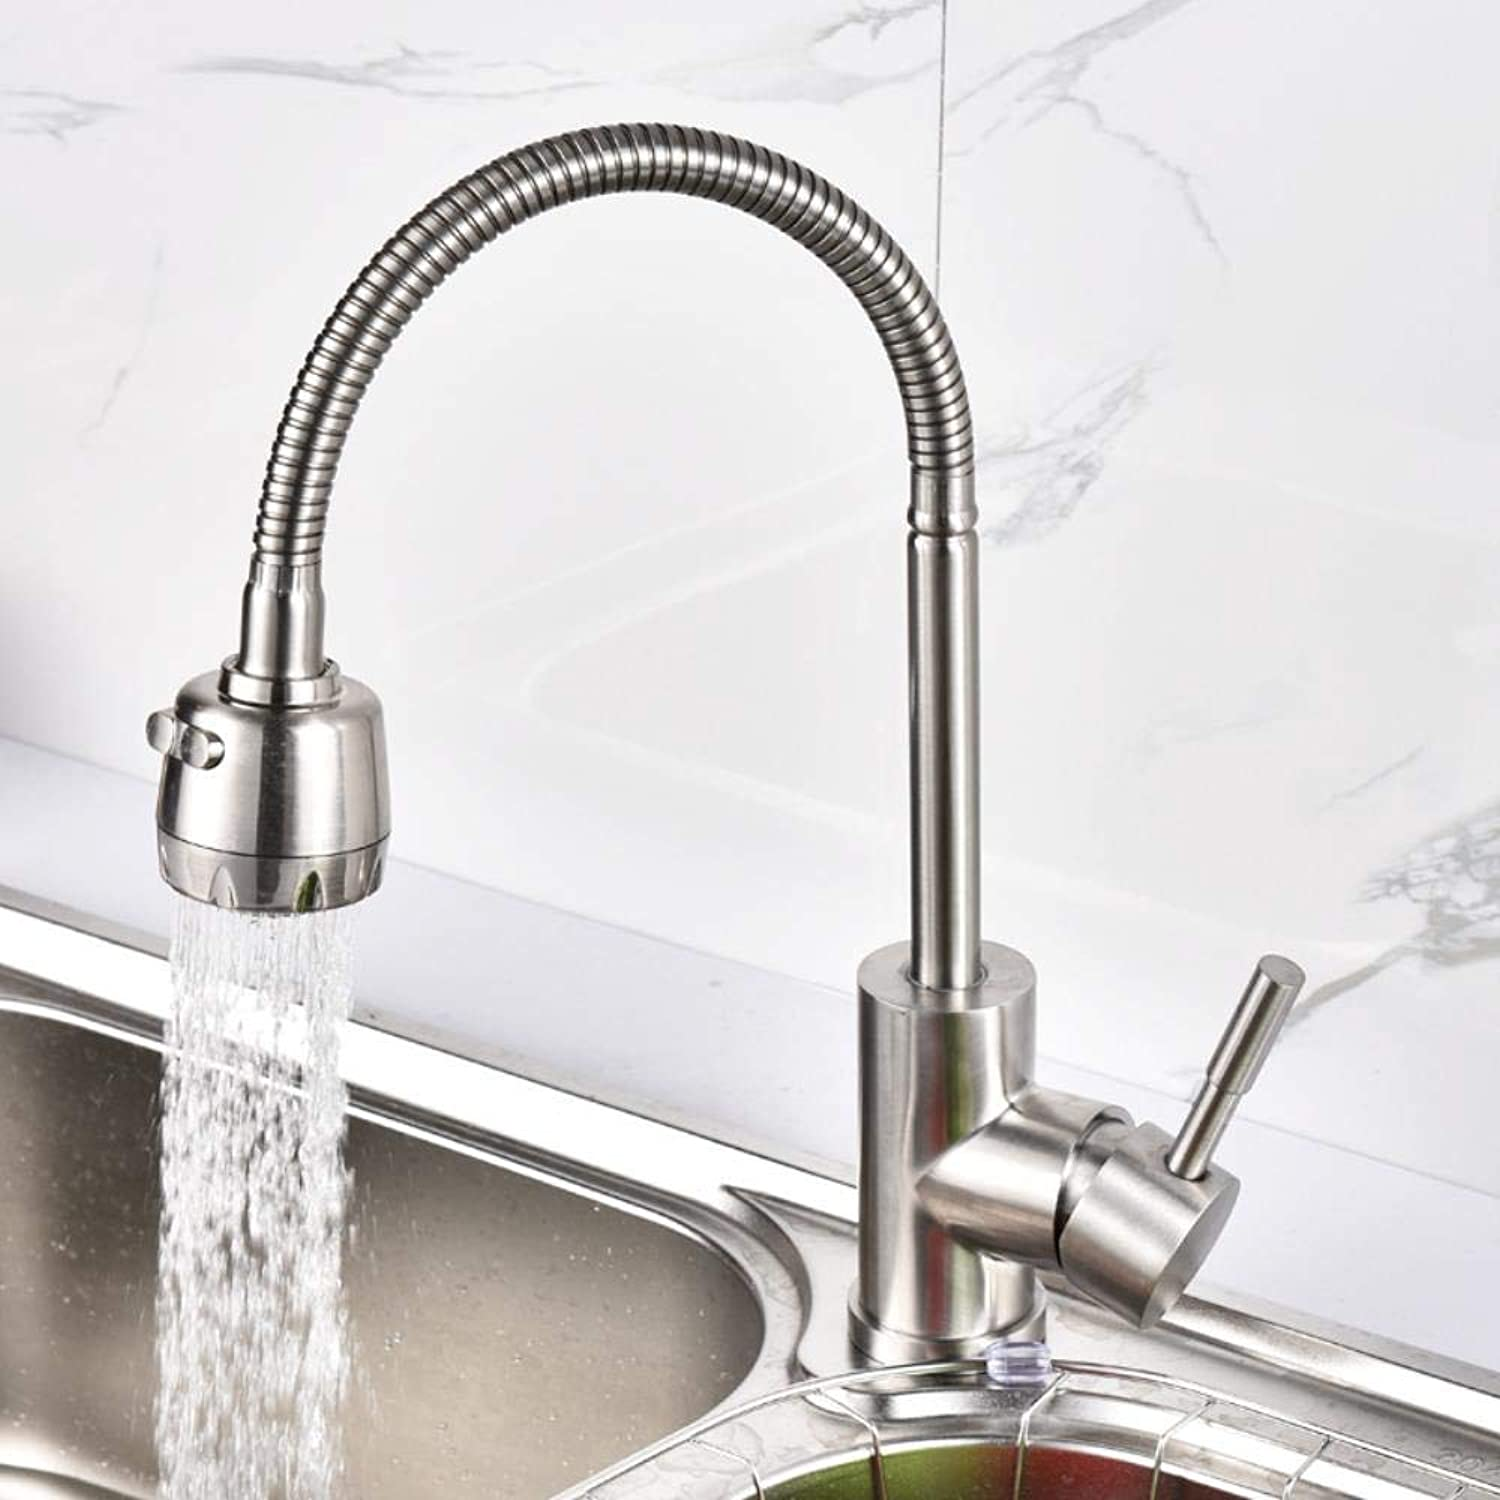 redatable Universal Kitchen Basin Hot and Cold Vegetable Faucet Z1026